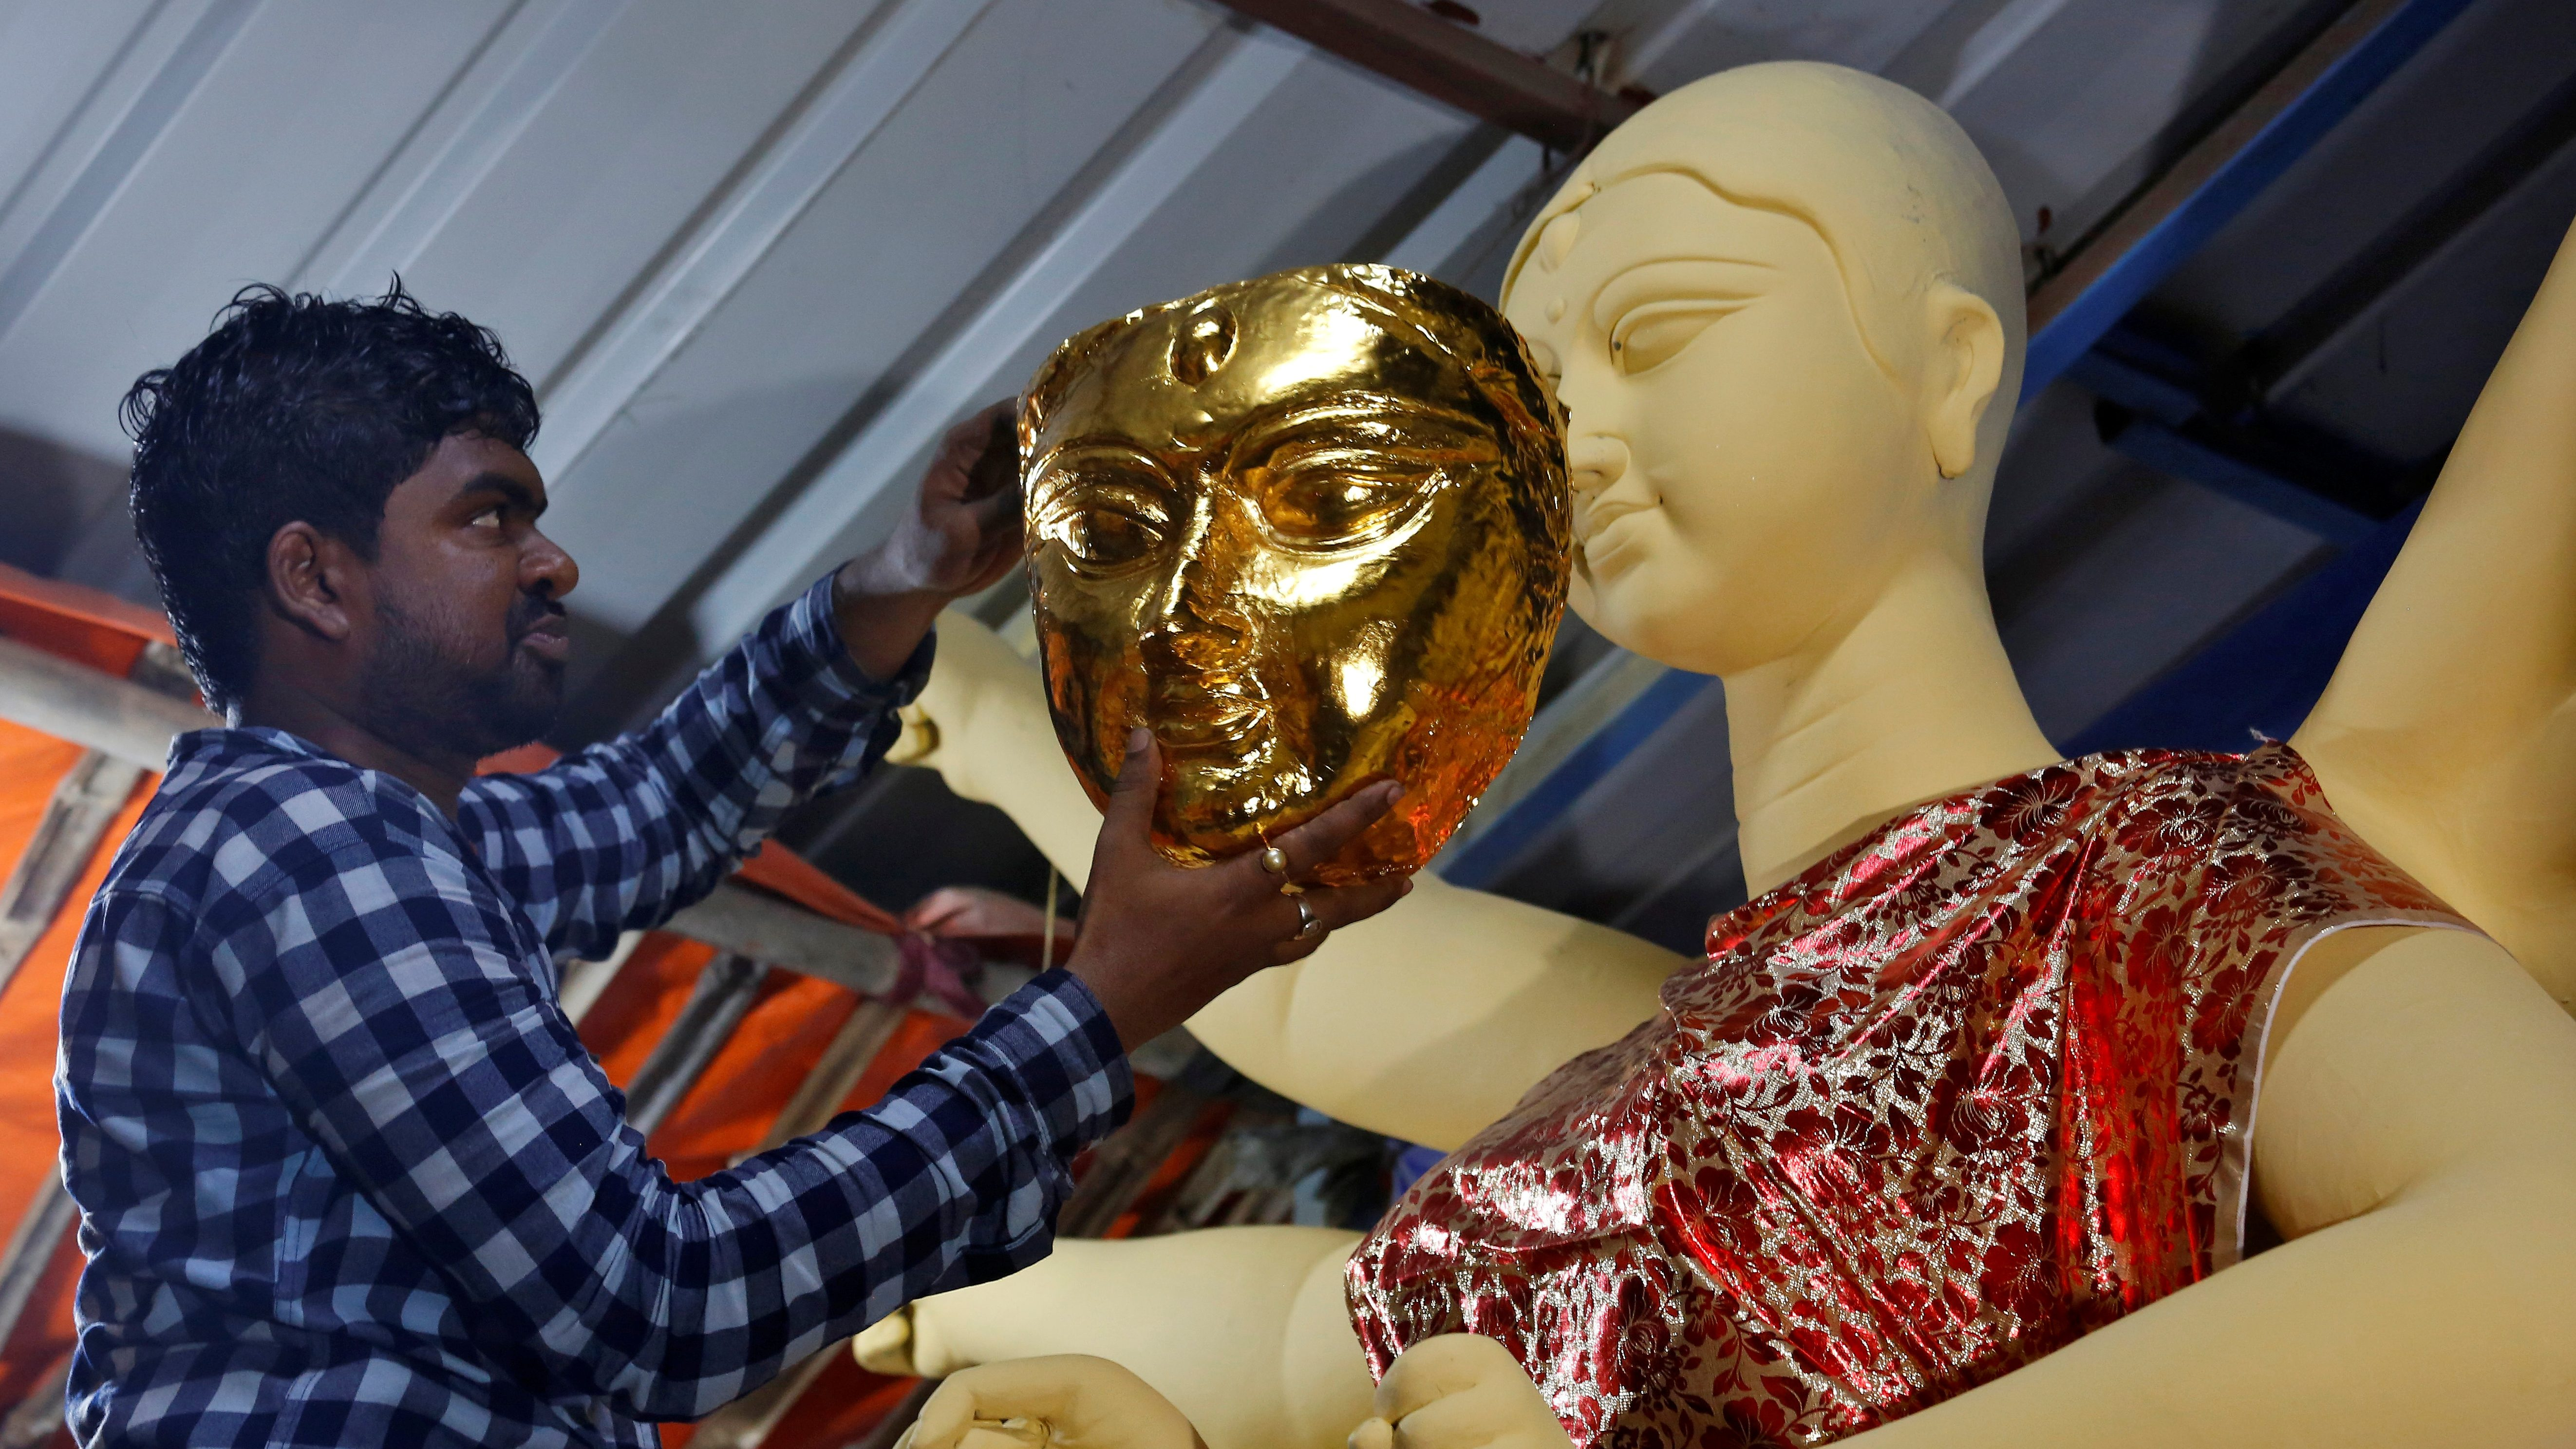 An image of an artisan tries a gold face on an idol of the Hindu goddess Durga during a media preview inside a workshop during preparations for the upcoming Durga Puja festival in Kolkata